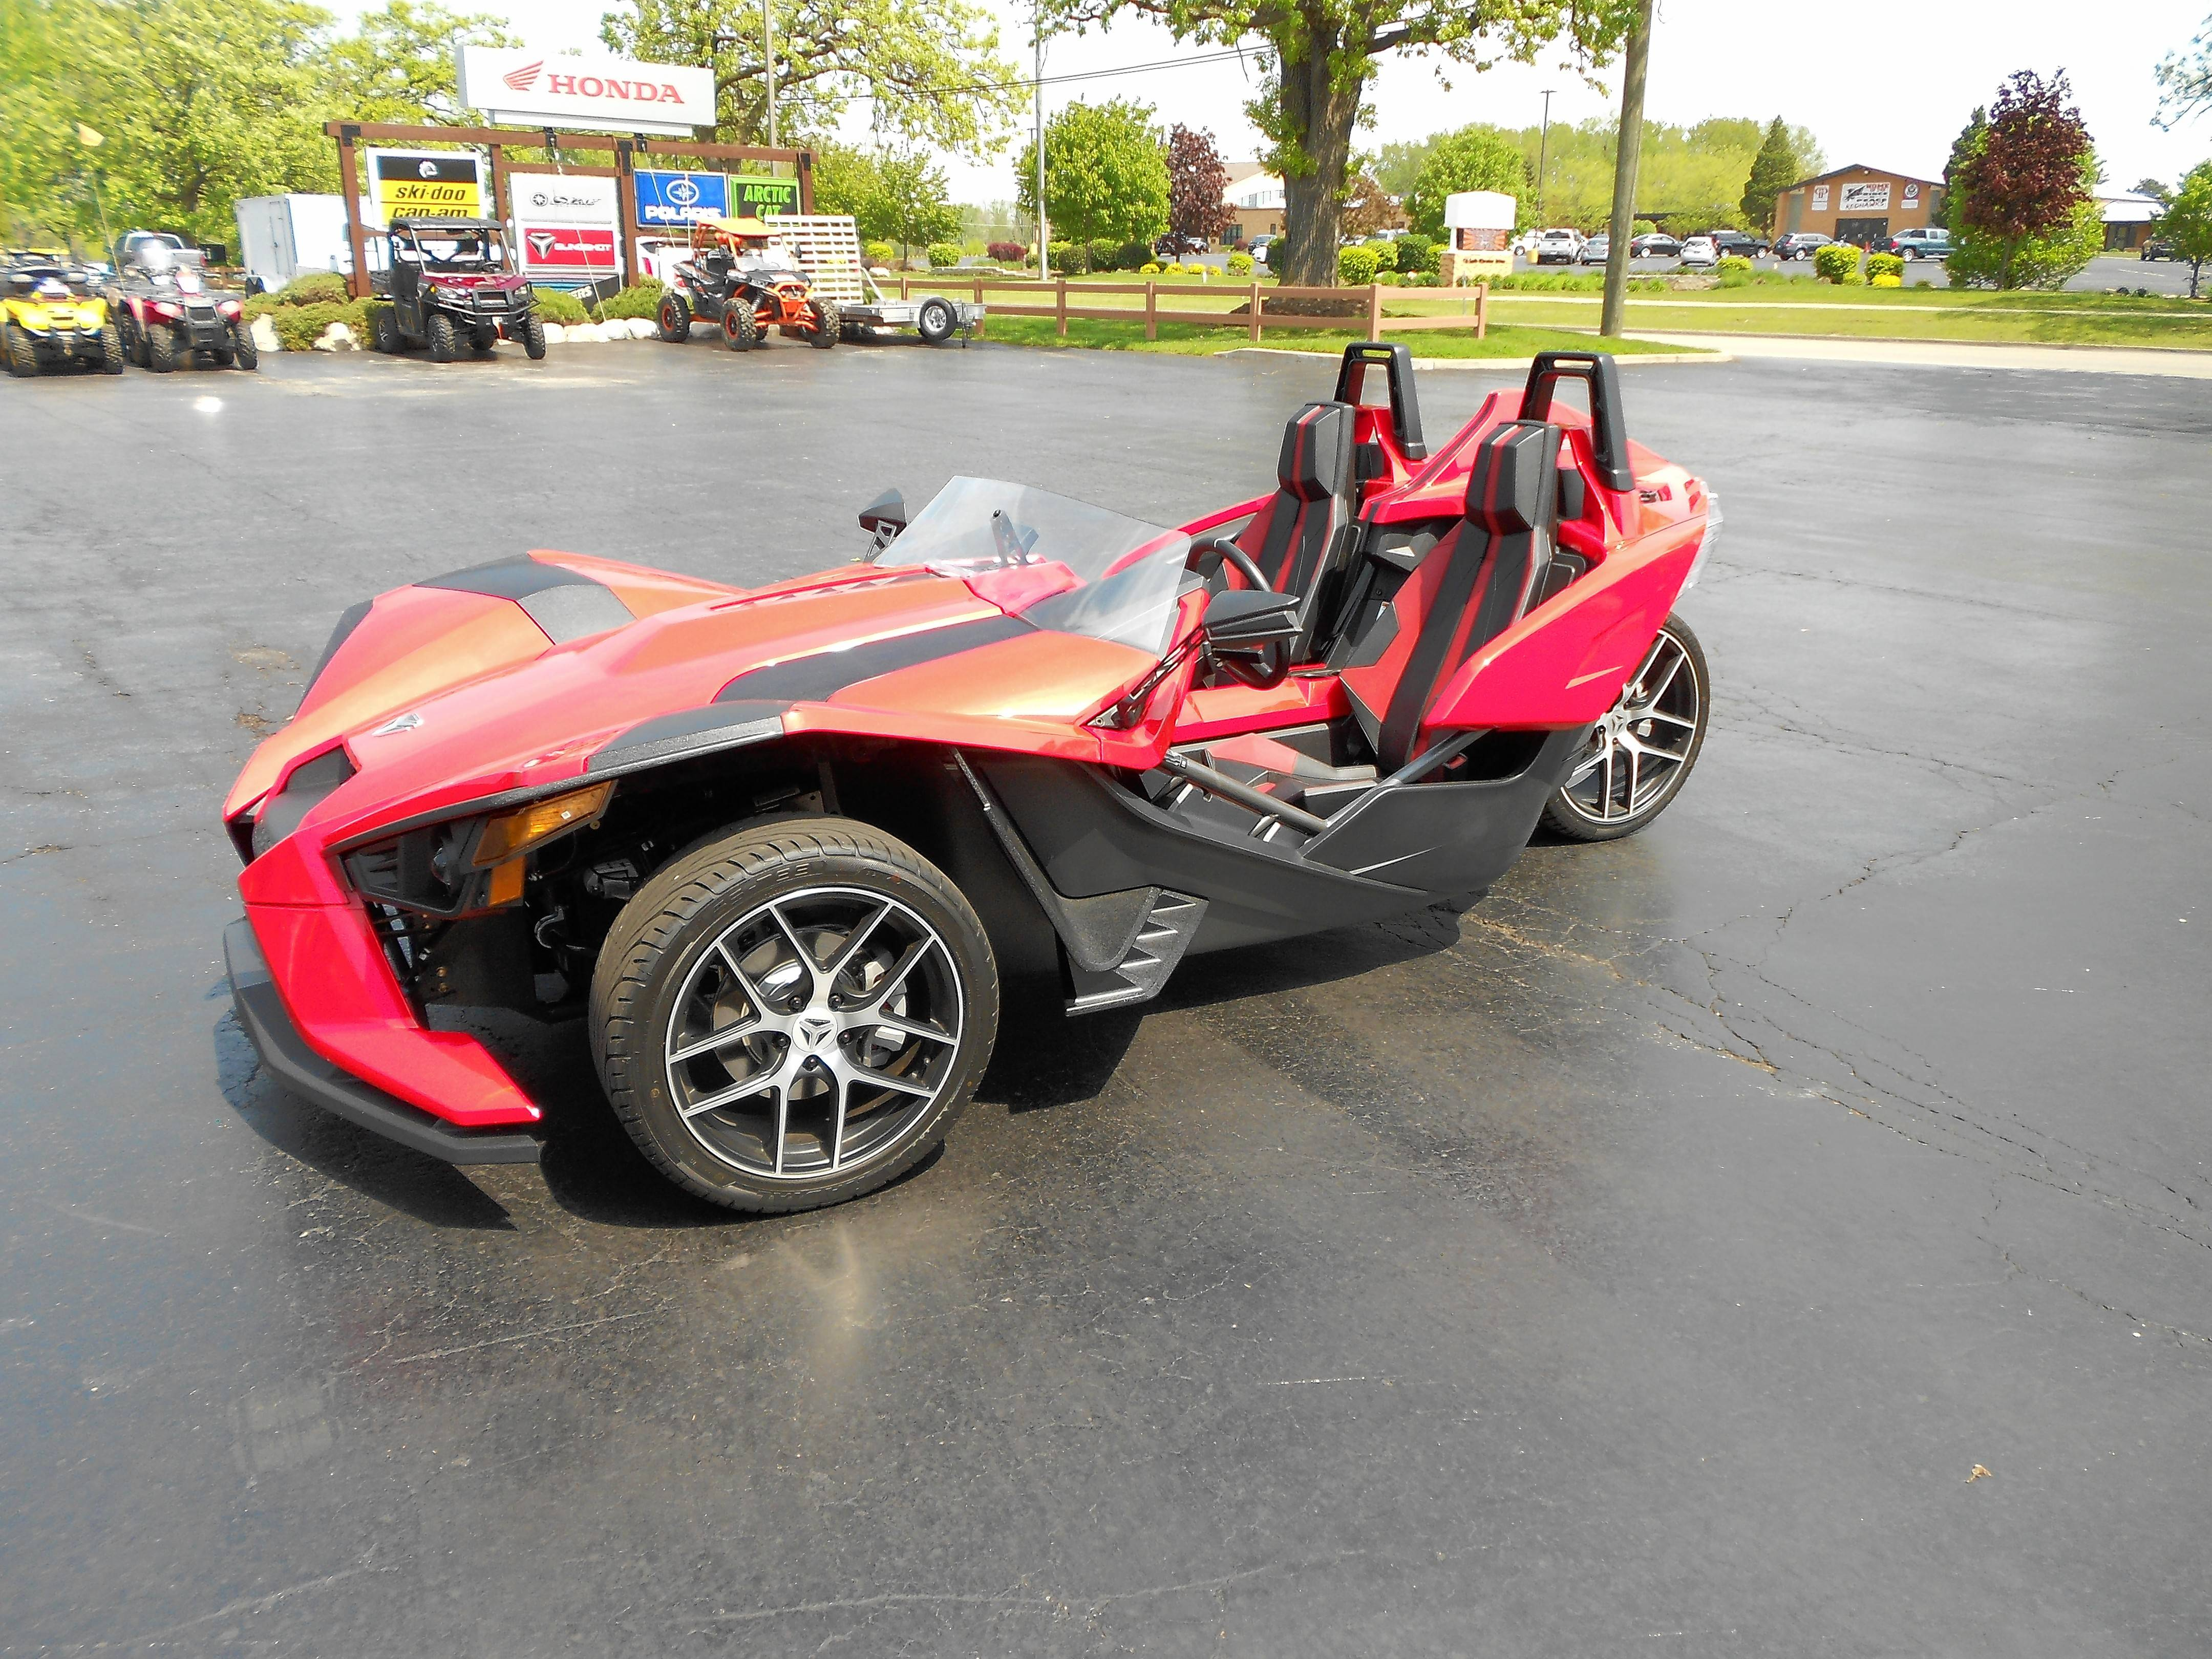 The Slingshot generates more horsepower than a Mazda Miata sports car.